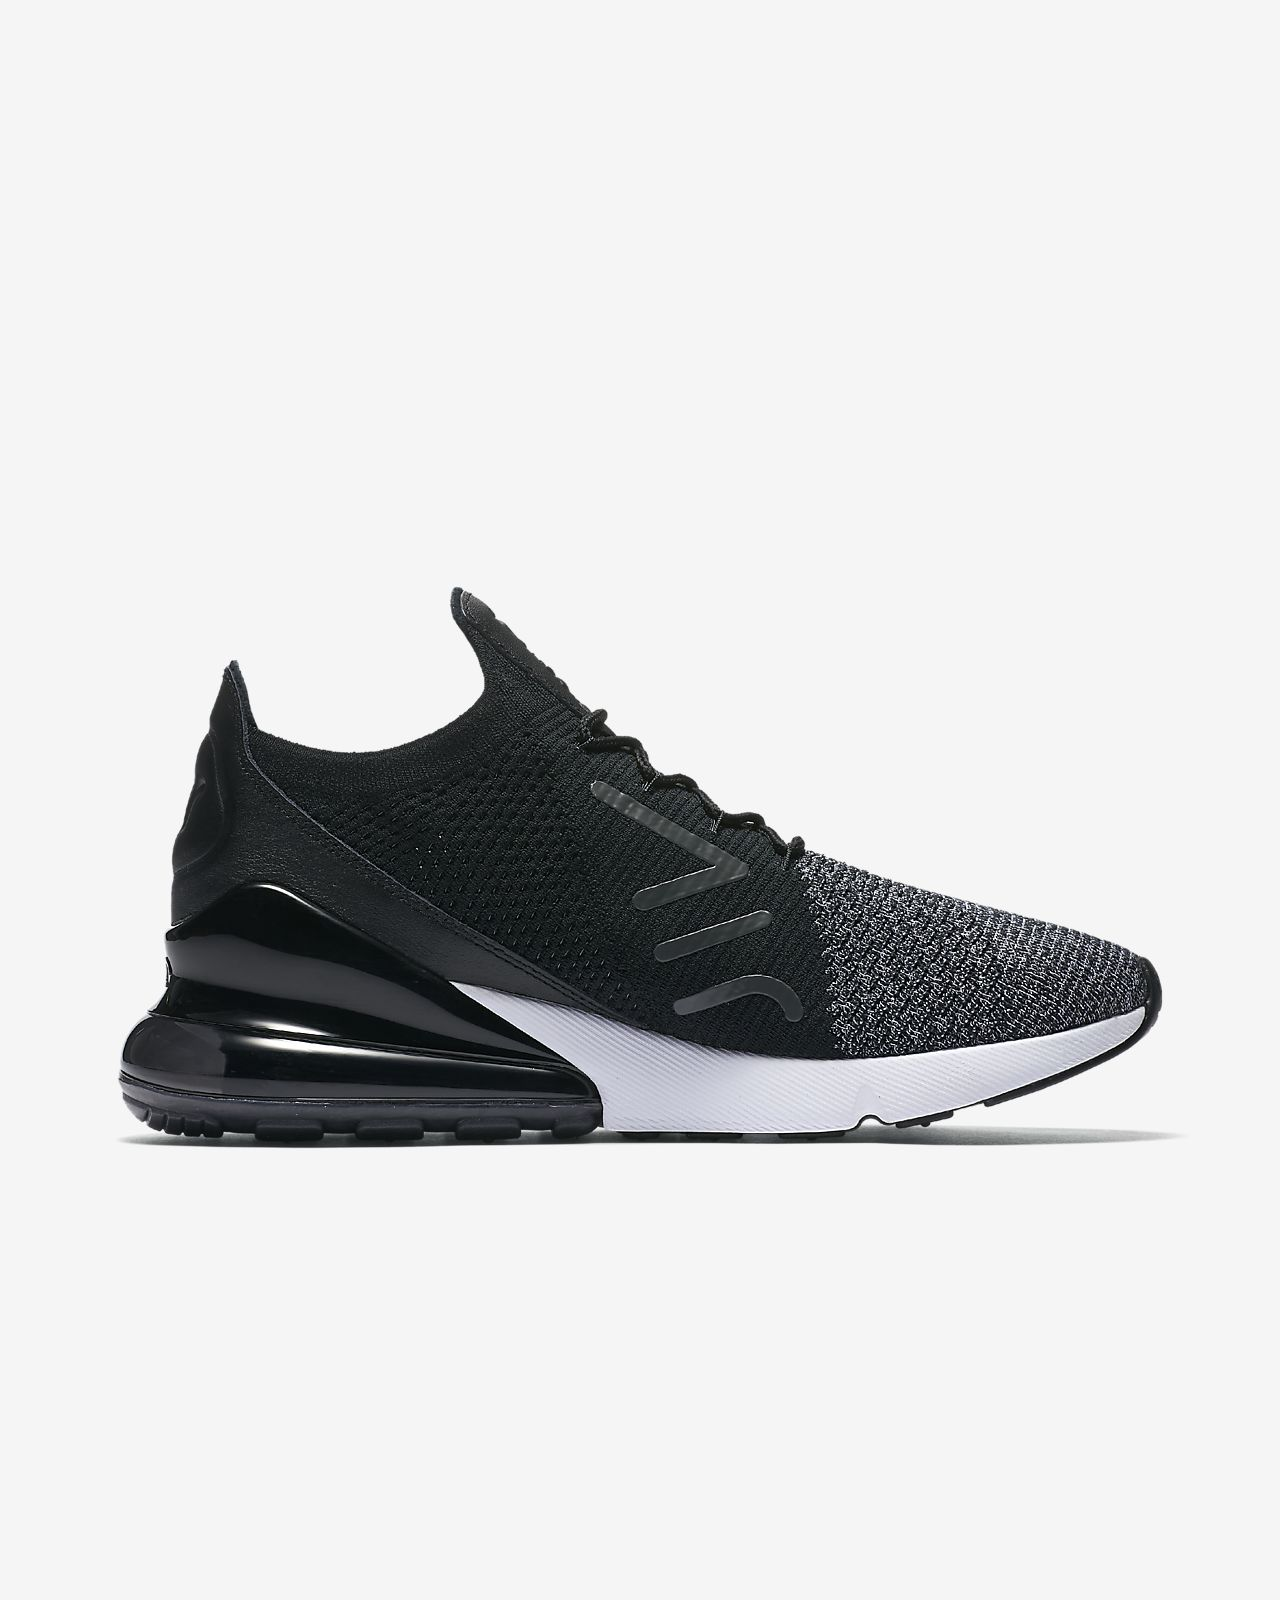 Air Max Flyknit Moderne - Chaussures - Bas-tops Et Baskets Nike QVwhdg6